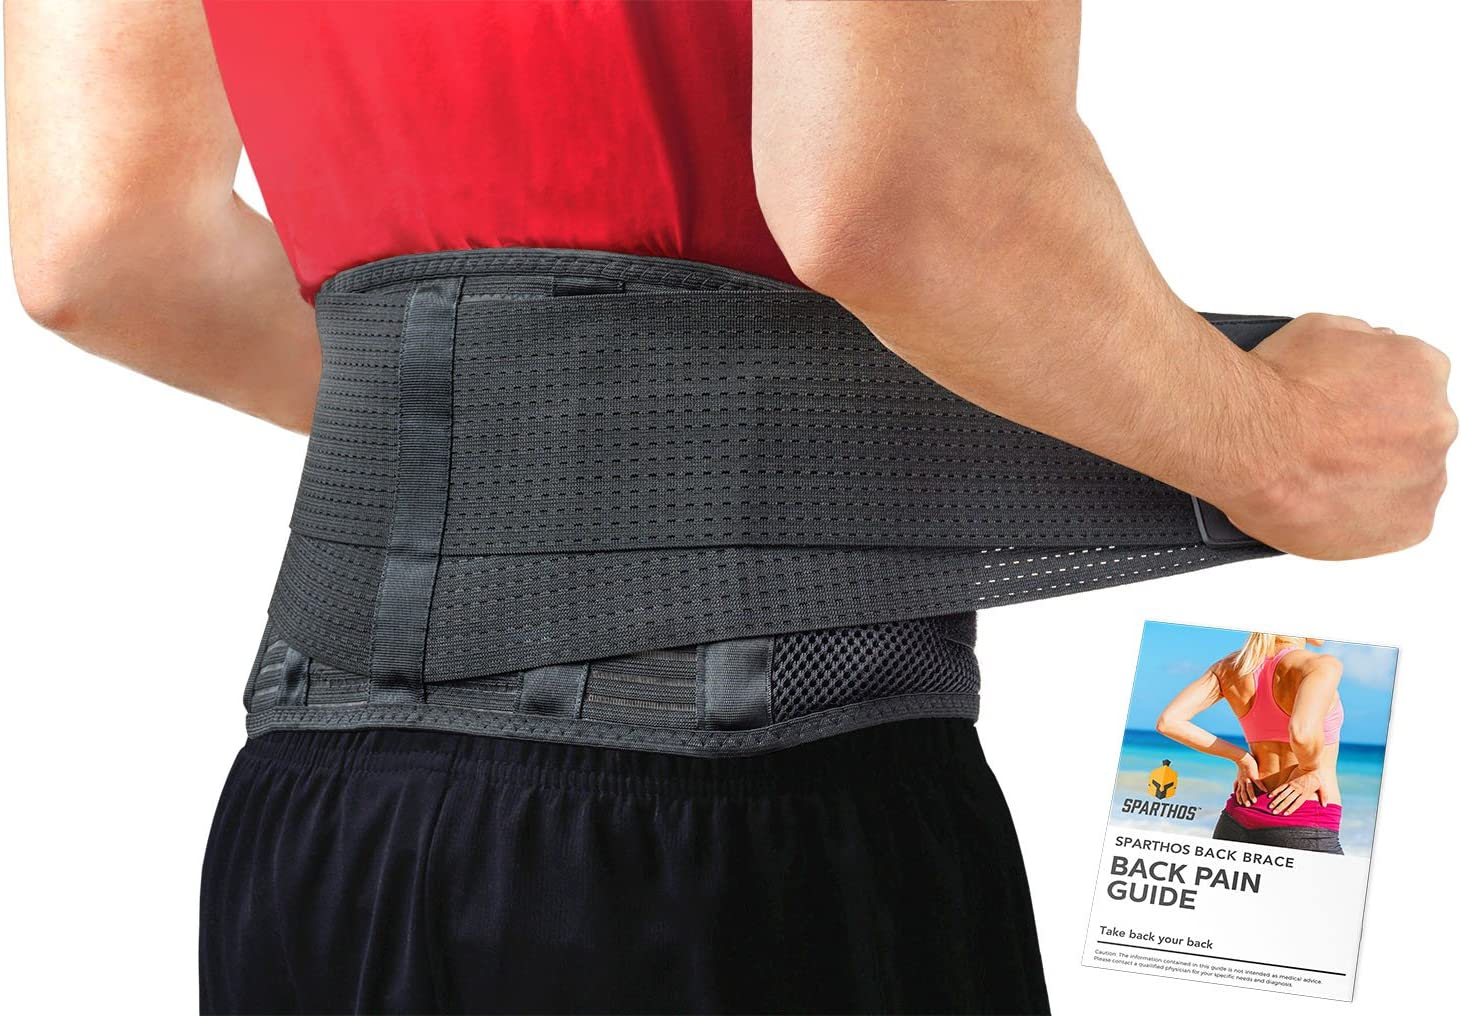 Lower Back Brace for Pain Relief S Adjustable Back Support Belt for Lifting Work // Lumbar Support Scoliosis for Men and Women Back Strap for Relief of Pain from Sciatica 26 /– 33 Waist